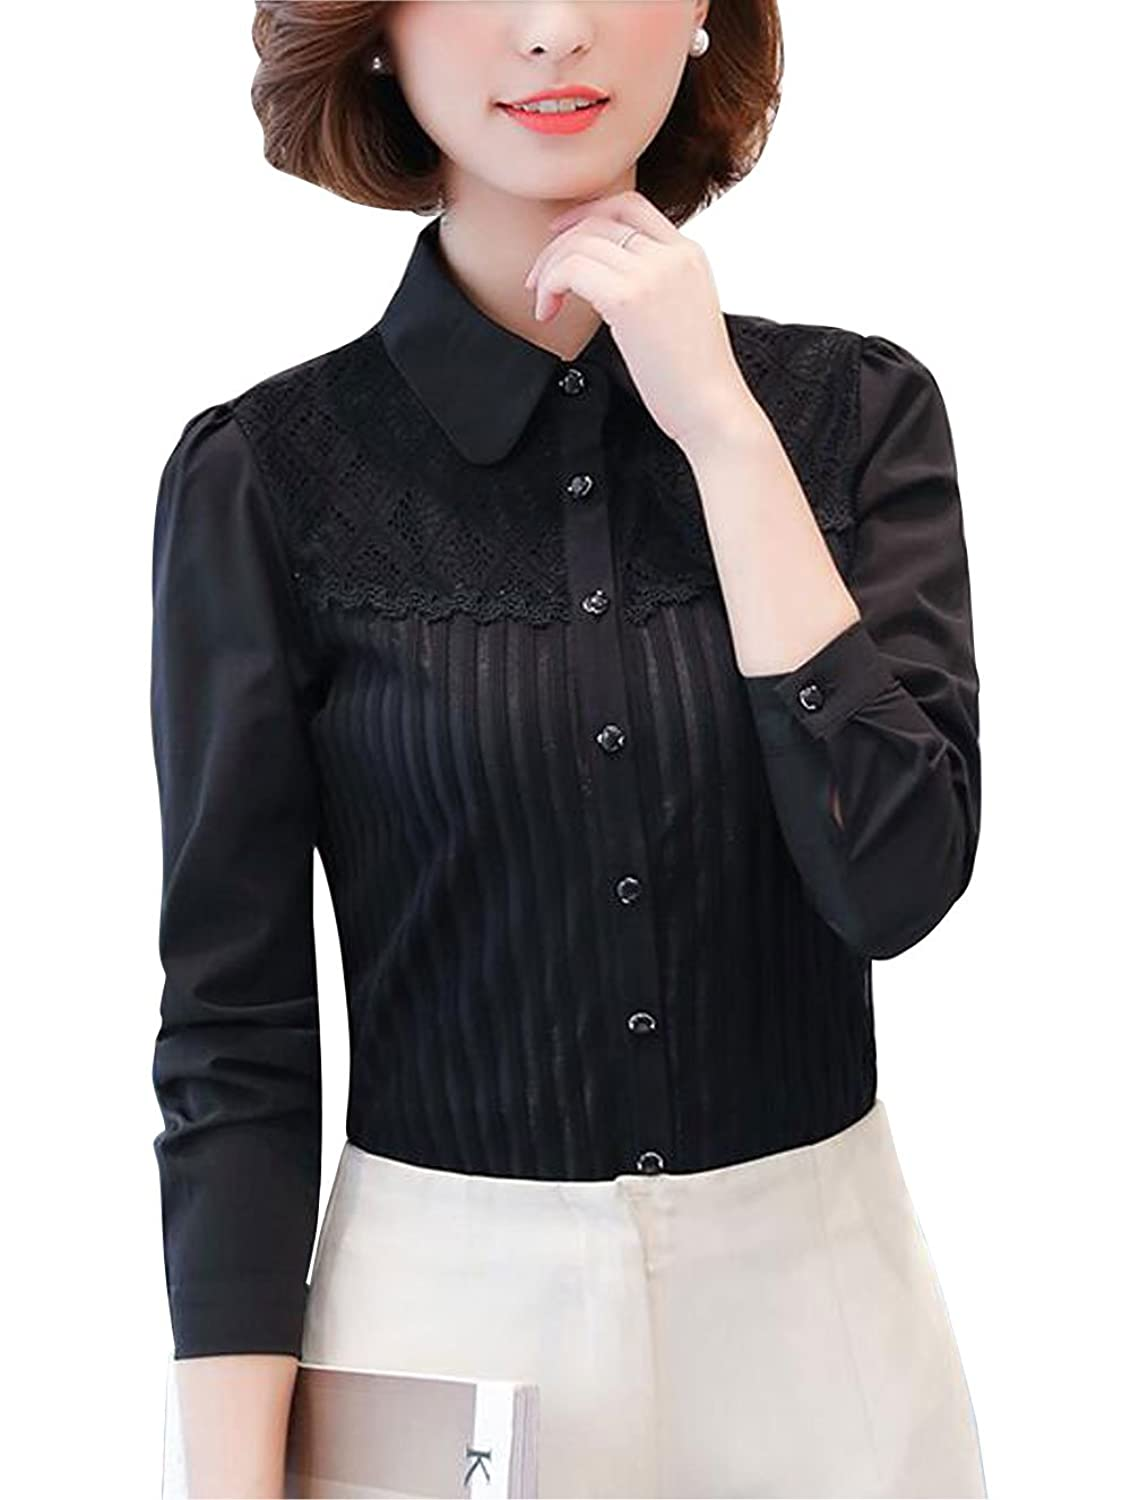 Victorian Blouses, Tops, Shirts, Vests Double Plus Open DPO Womens Vintage Collared Pleated Button Down Shirt Long Sleeve Lace Stretchy Blouse $23.59 AT vintagedancer.com